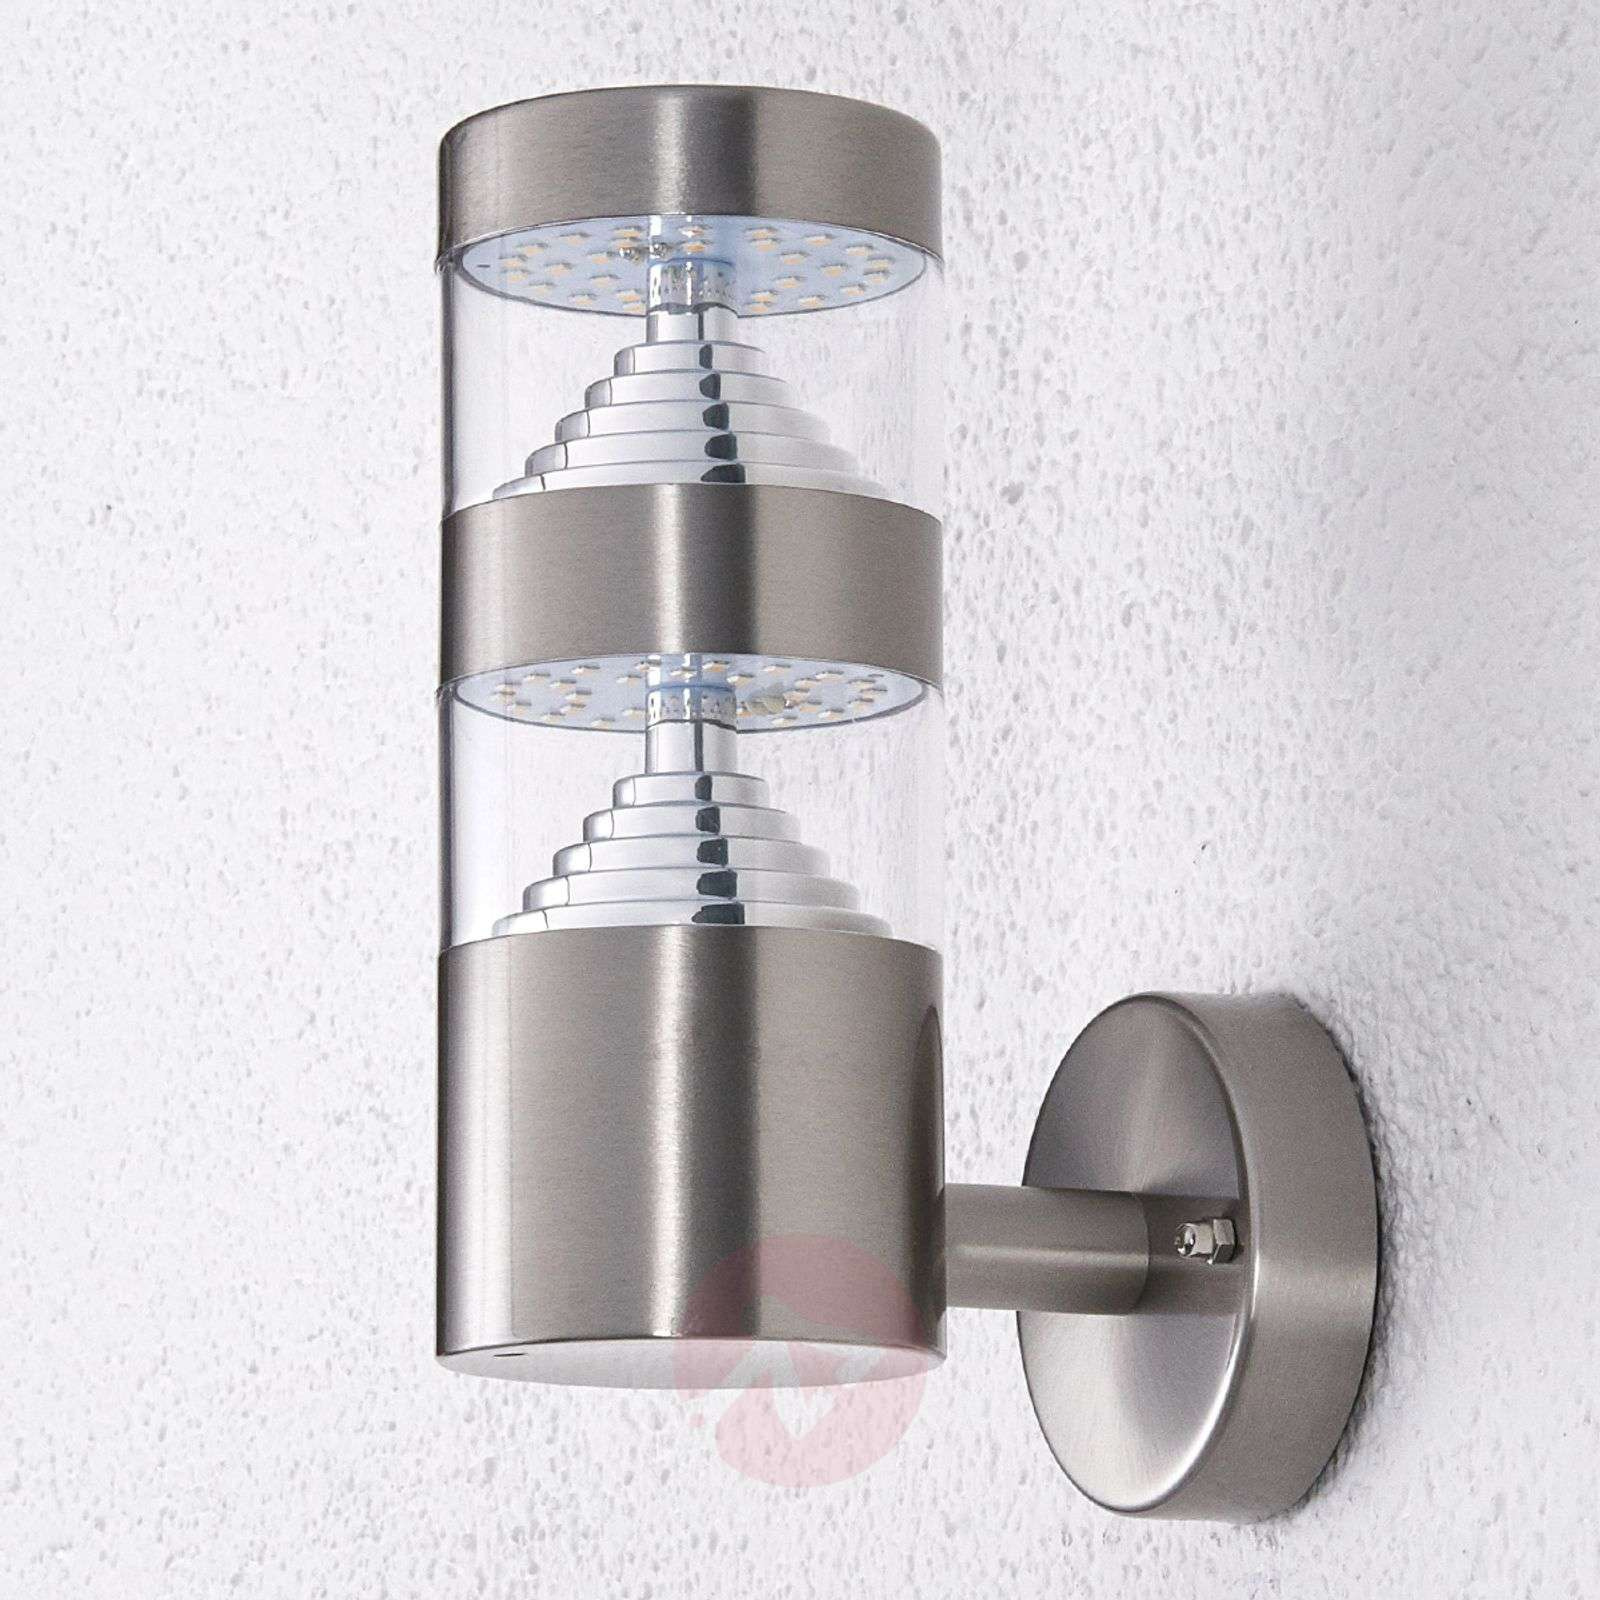 Stainless steel led outdoor wall light lanea lights stainless steel led outdoor wall light lanea 9988005 01 aloadofball Image collections